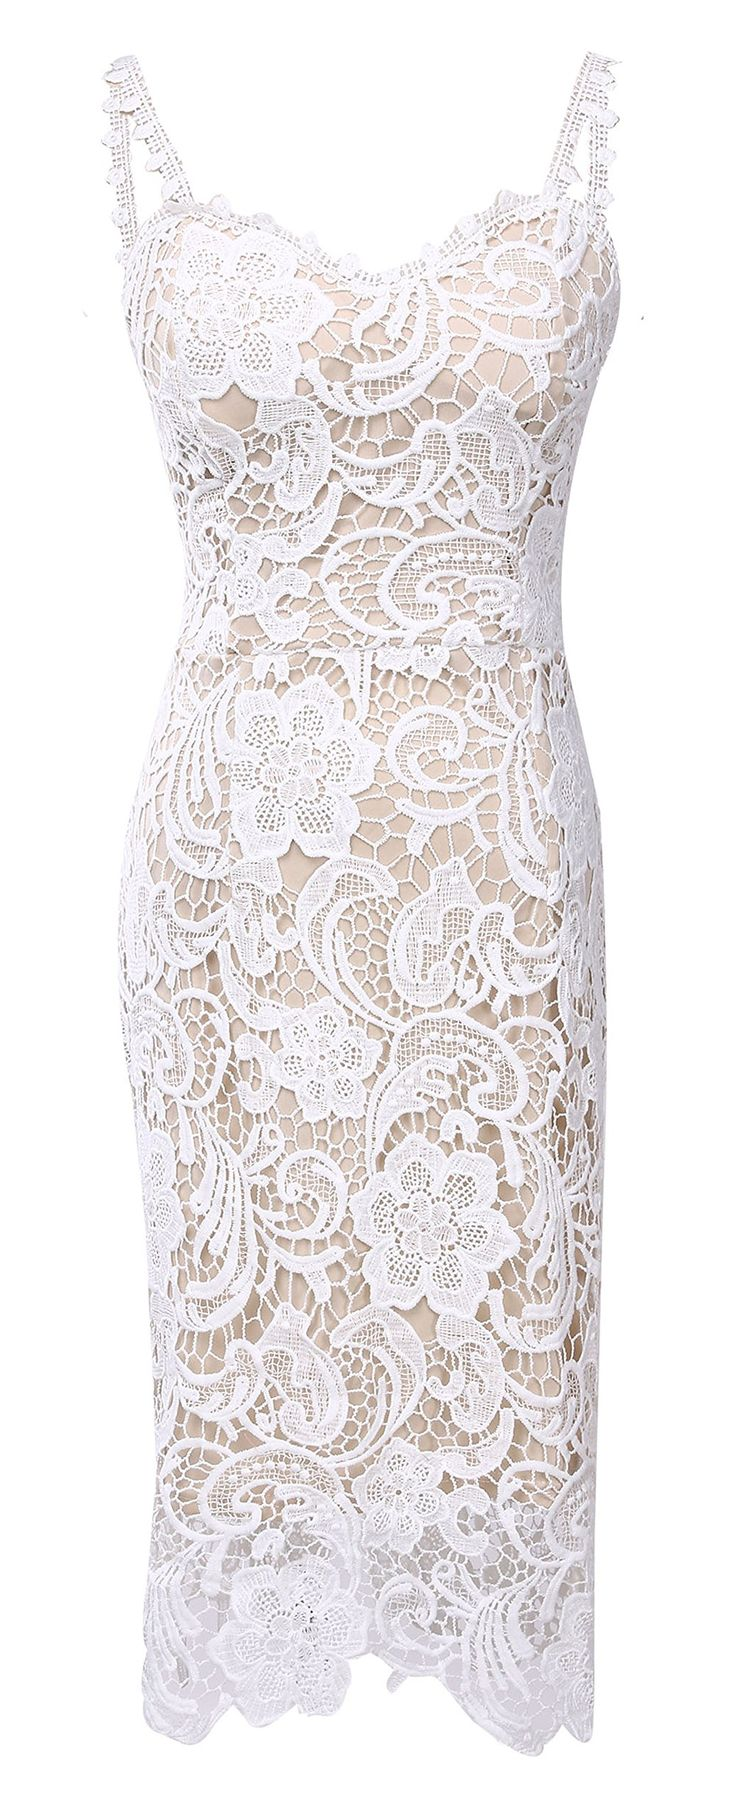 Women Elegant Sweetheart Neck Lace Crochet Midi Bodycon Sheath Waist Dress White XL